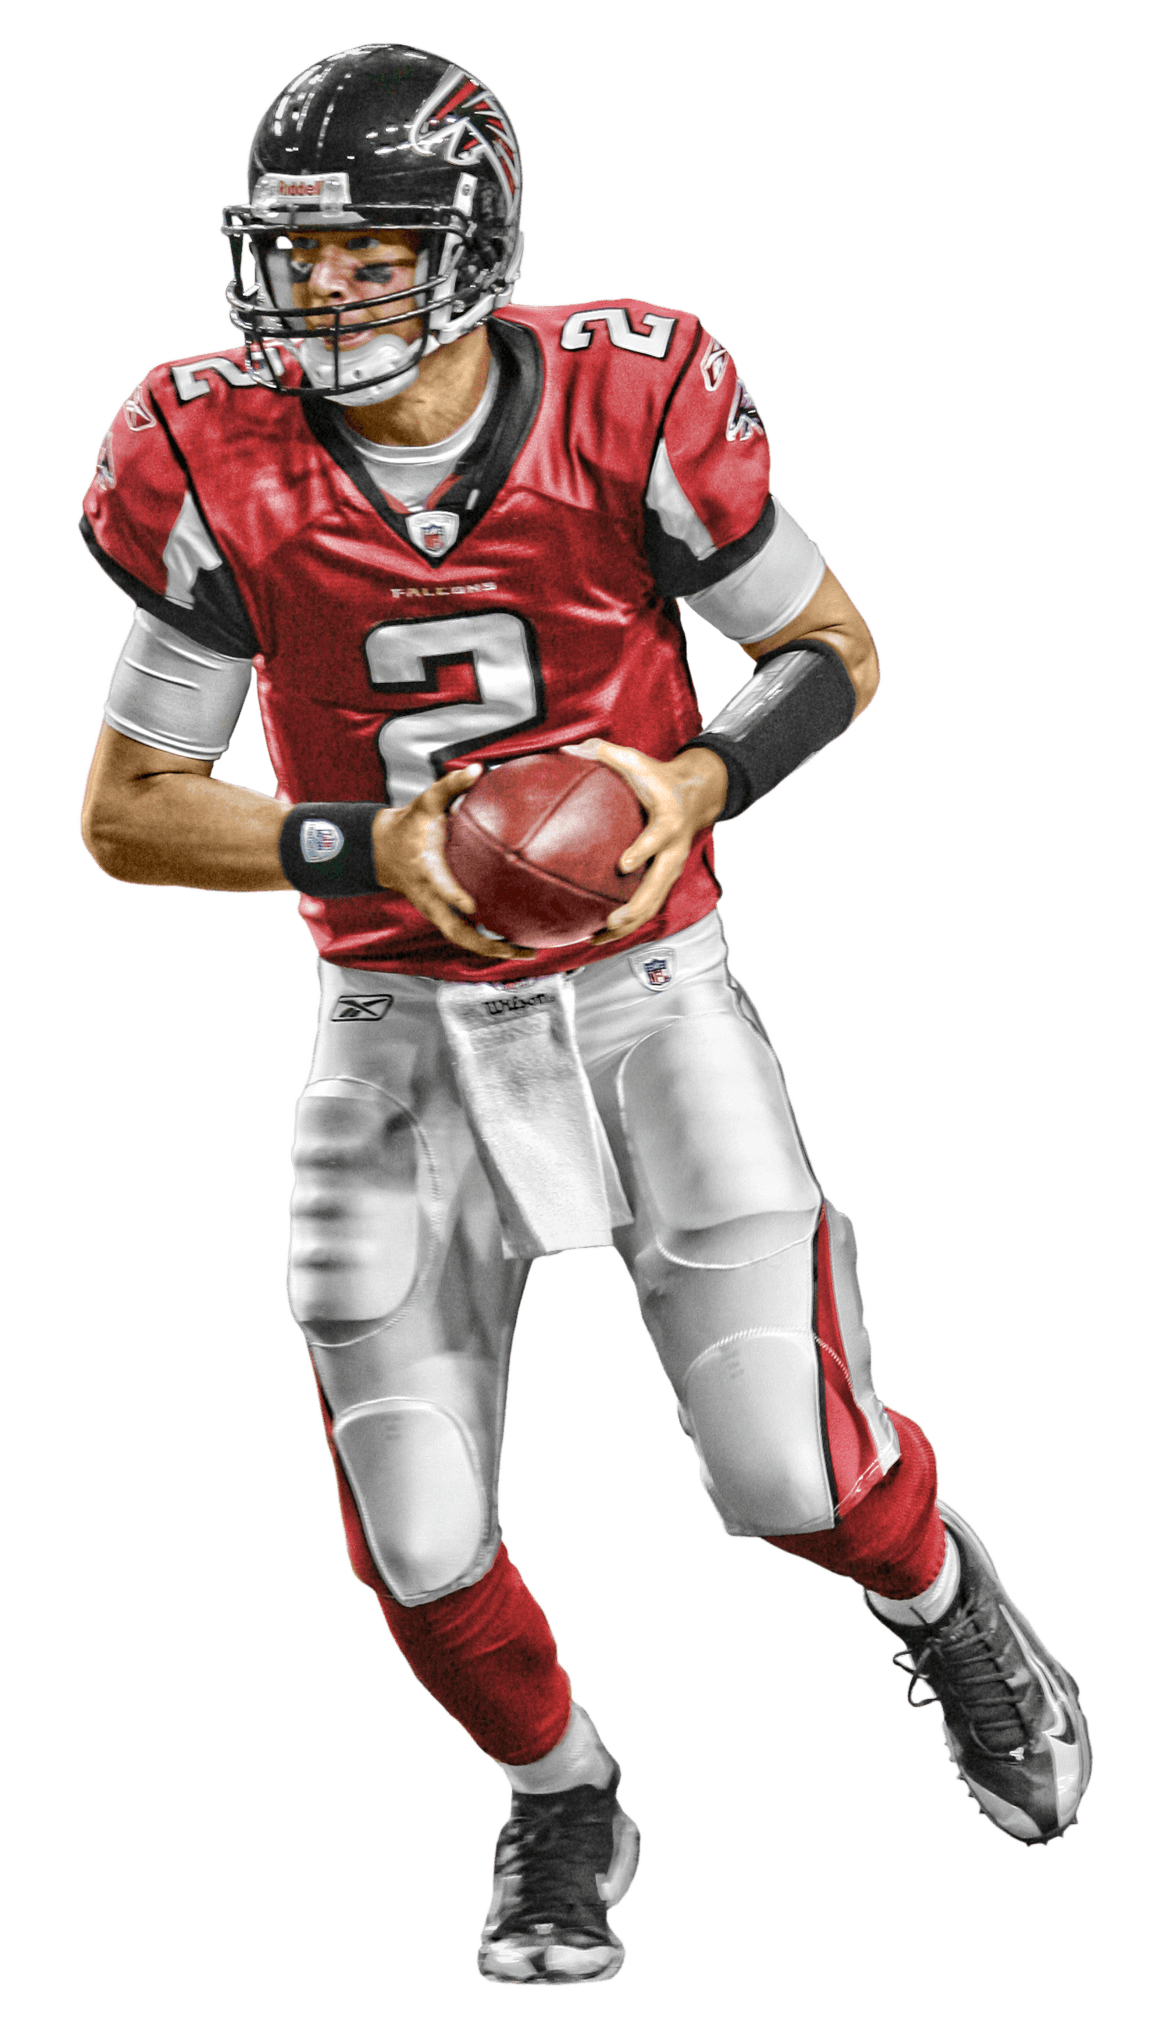 Running football player clipart banner freeuse stock American Football Player PNG Image - PurePNG | Free transparent CC0 ... banner freeuse stock